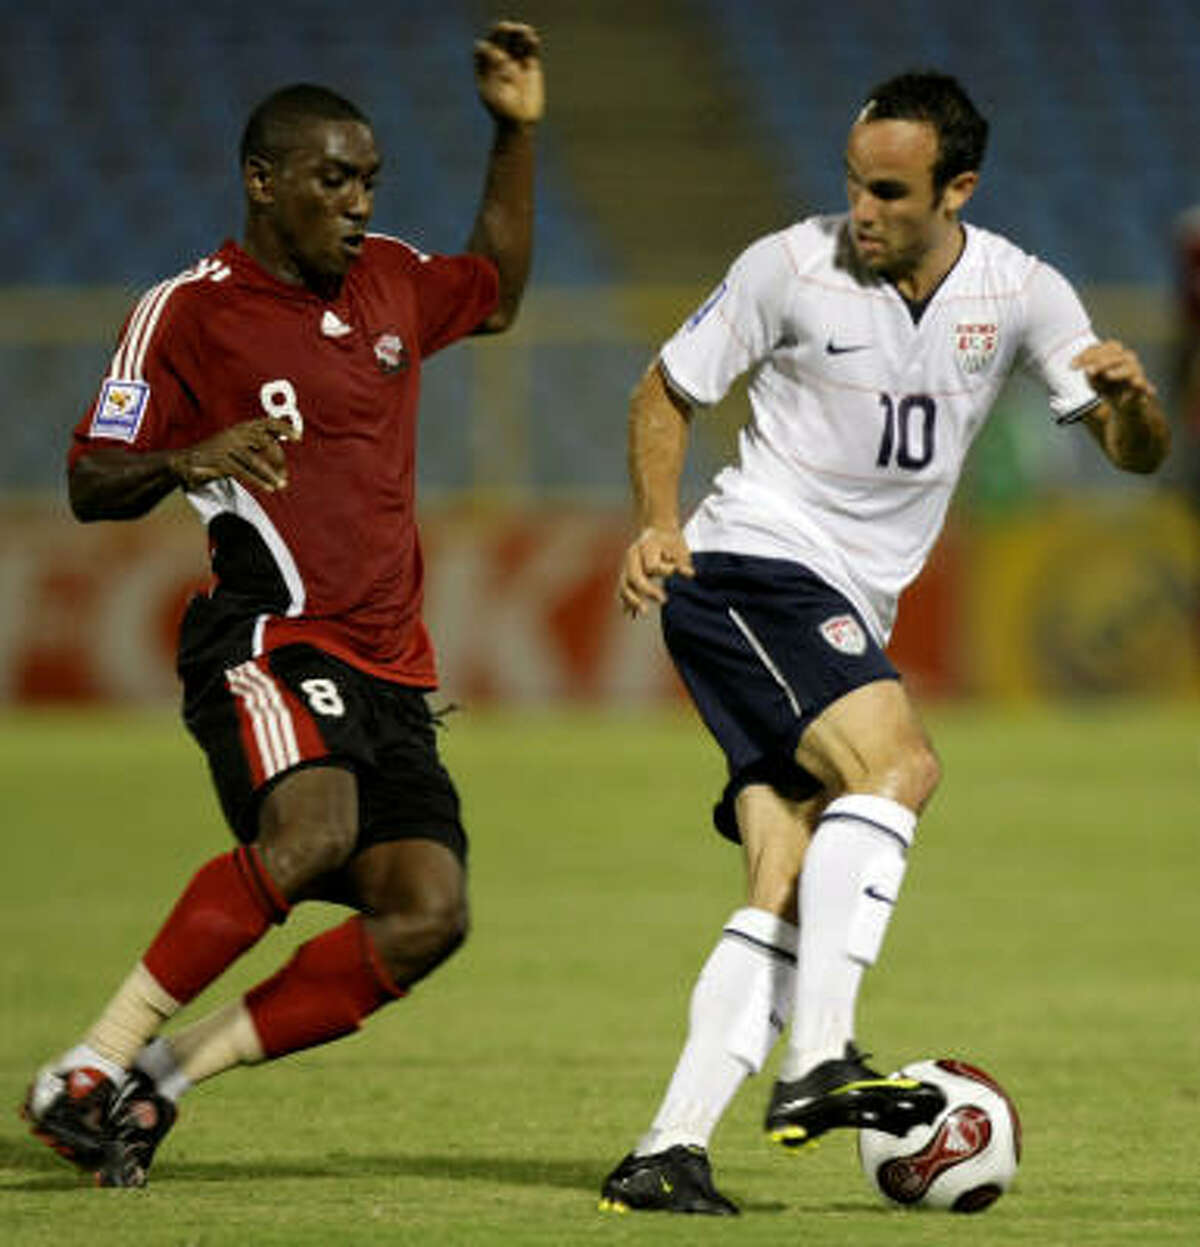 U.S.'s Landon Donovan, right, fights for the ball with Trinidad and Tobago's Trent Noel.